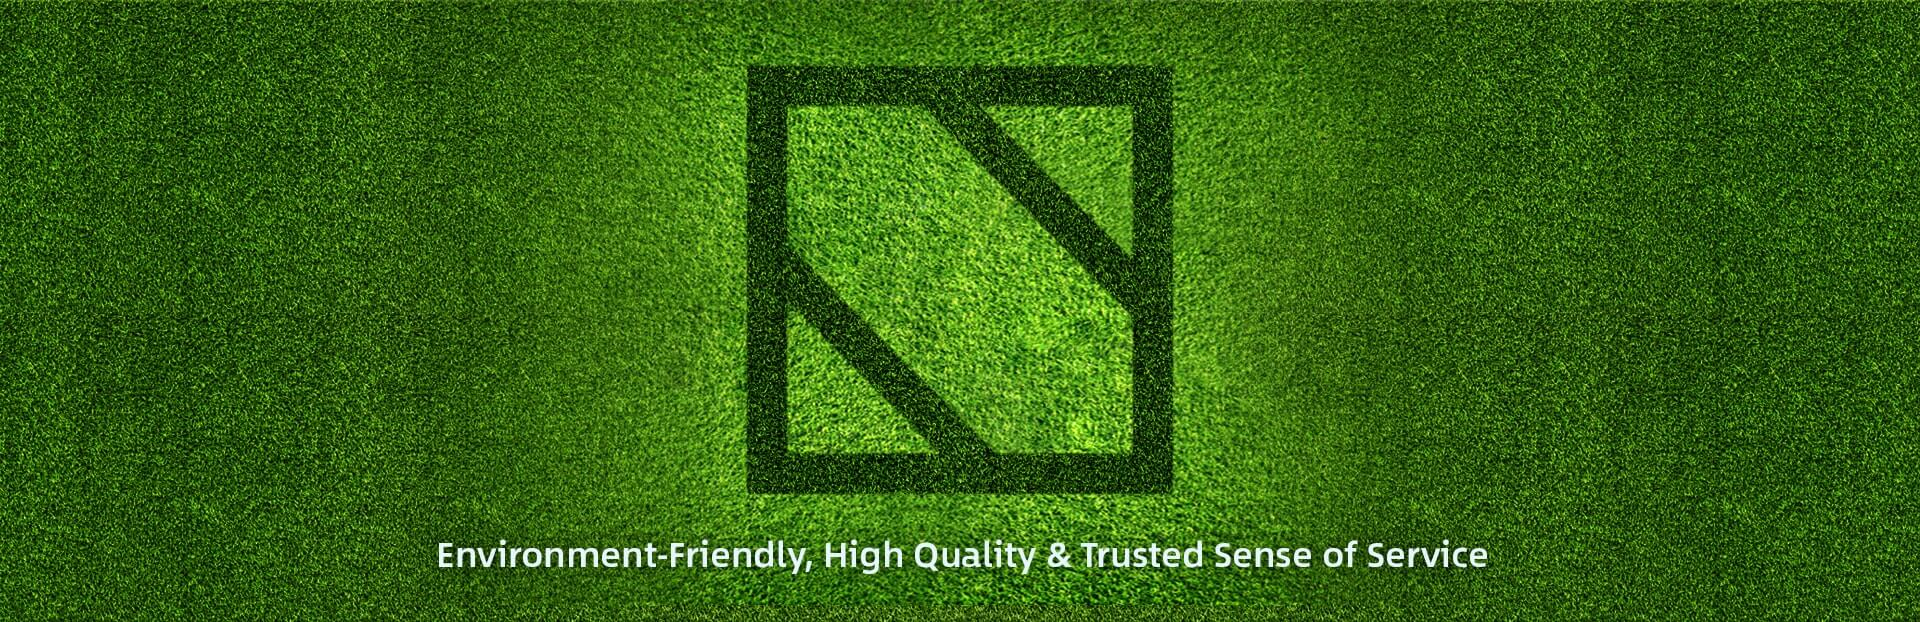 Environment-Friendly, High Quality & Trusted Sense of Service